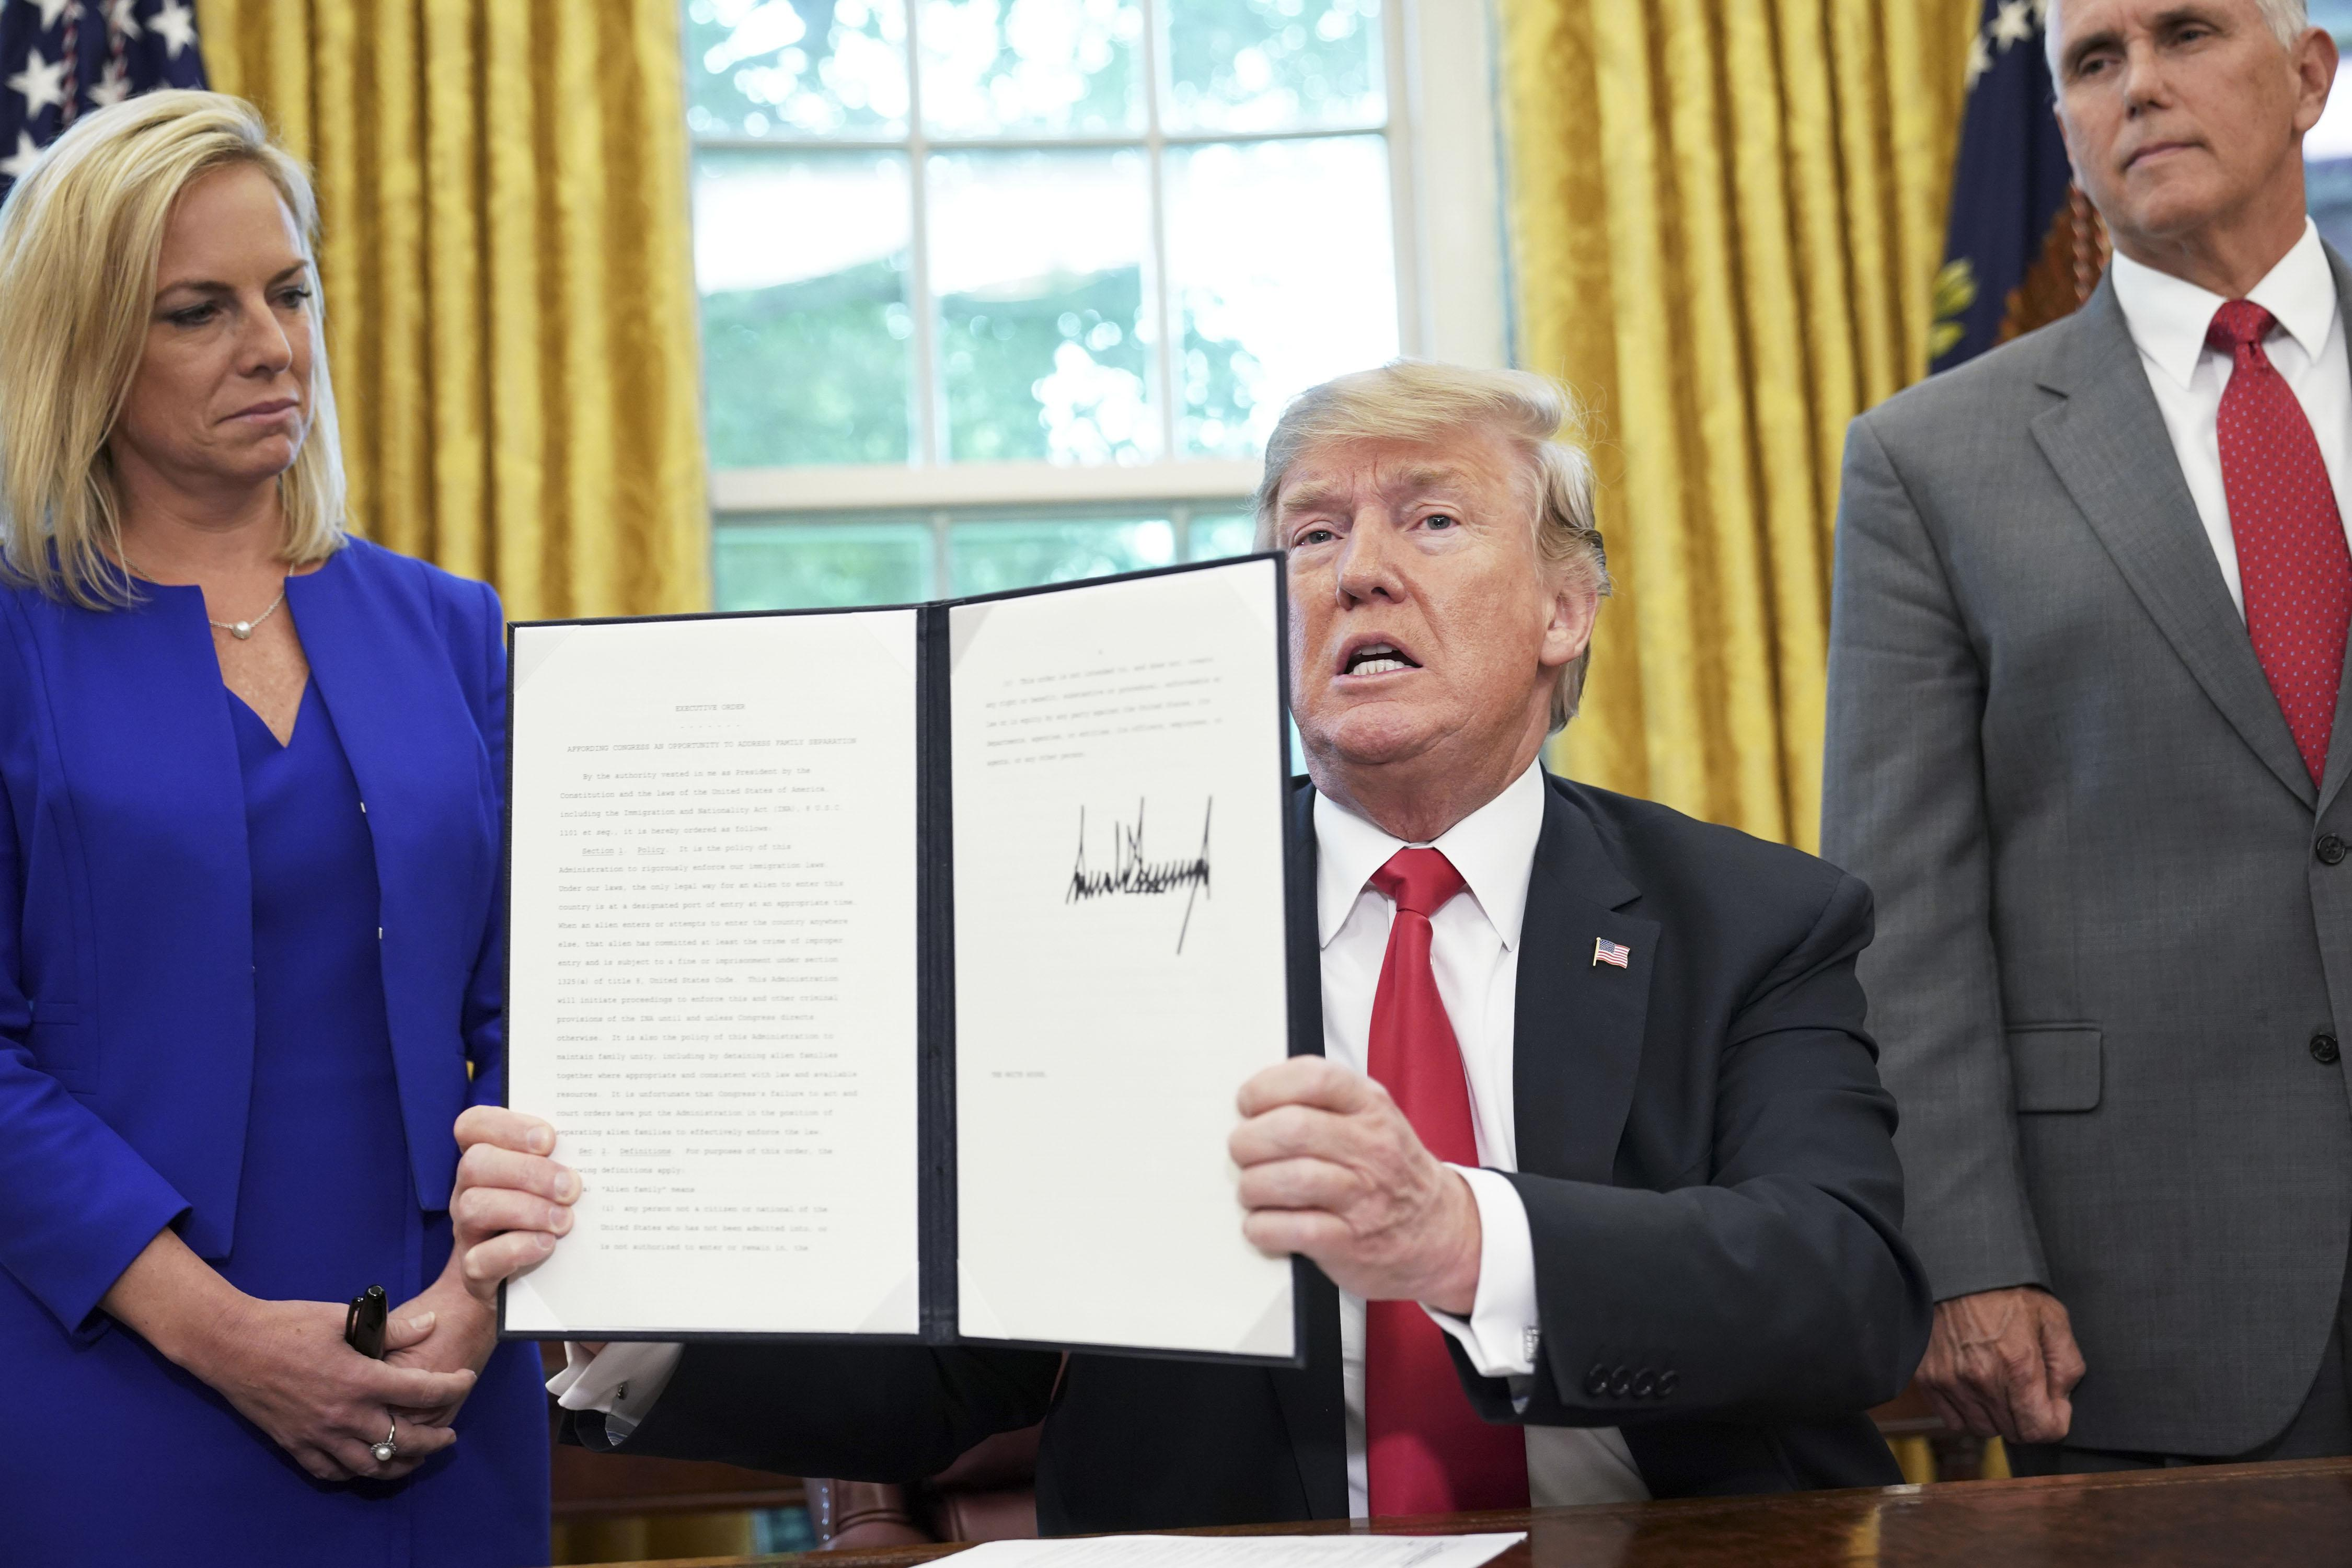 Kirstjen Nielsen, Vice President Mike Pence, President Donald Trump with the immigration executive order.